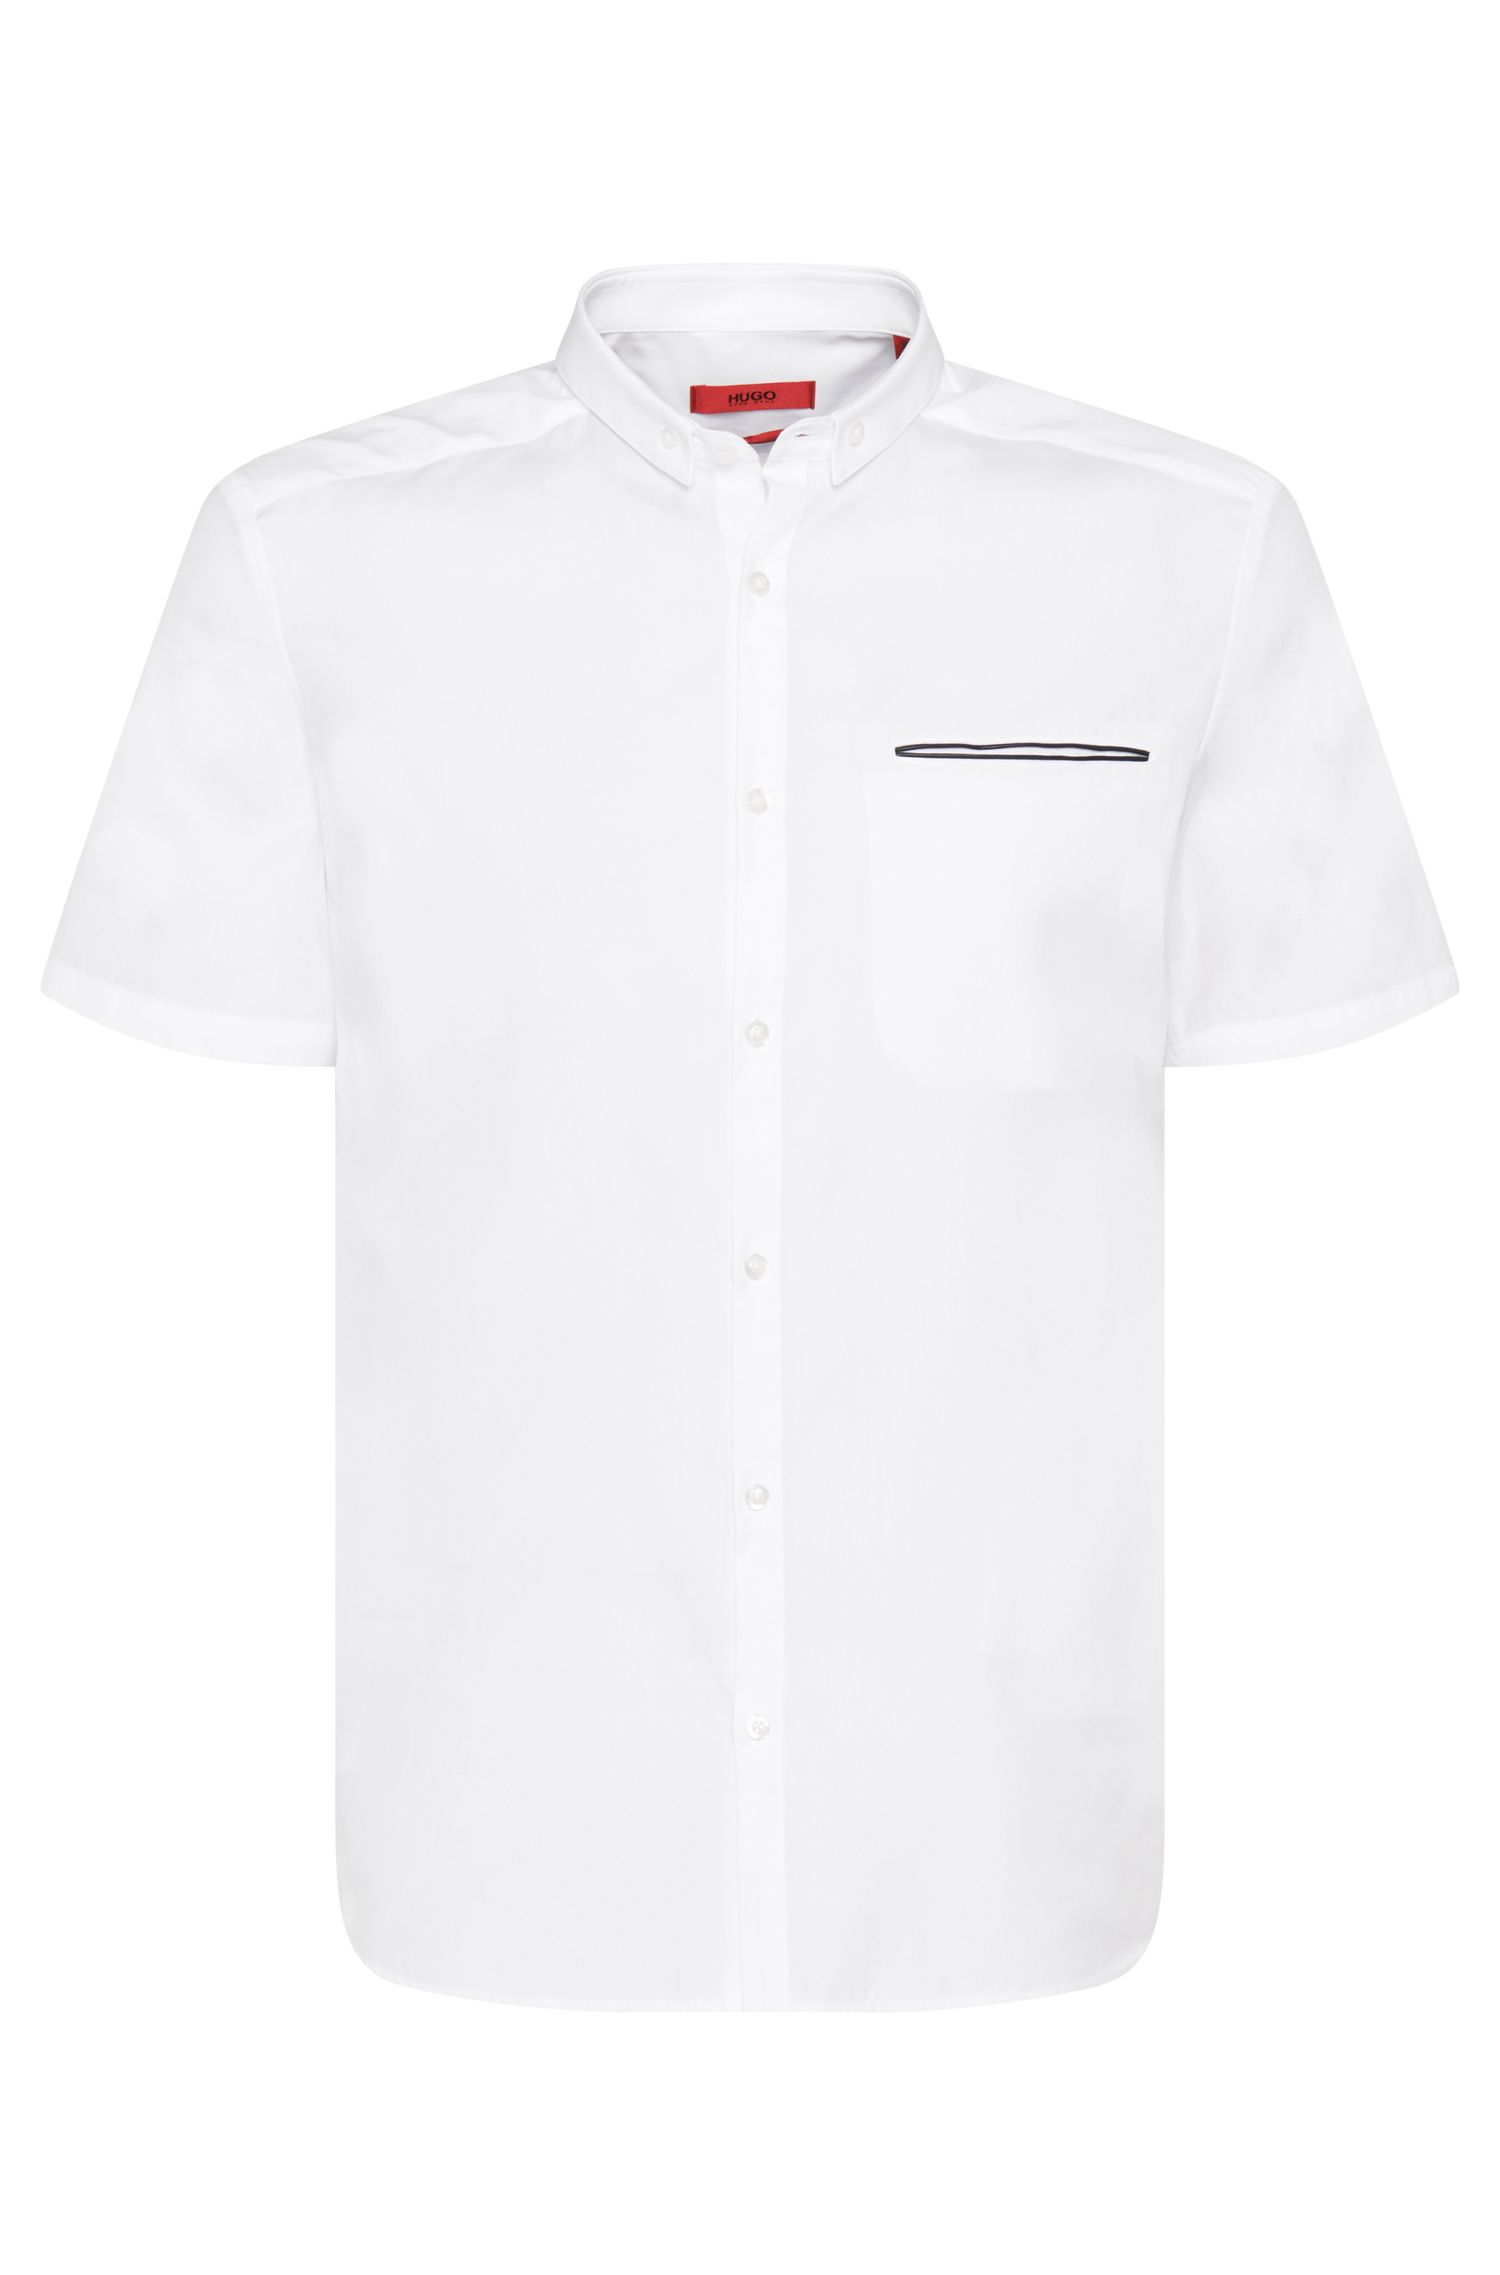 'Elpasolo' | Slim Fit, Cotton Button Down Shirt